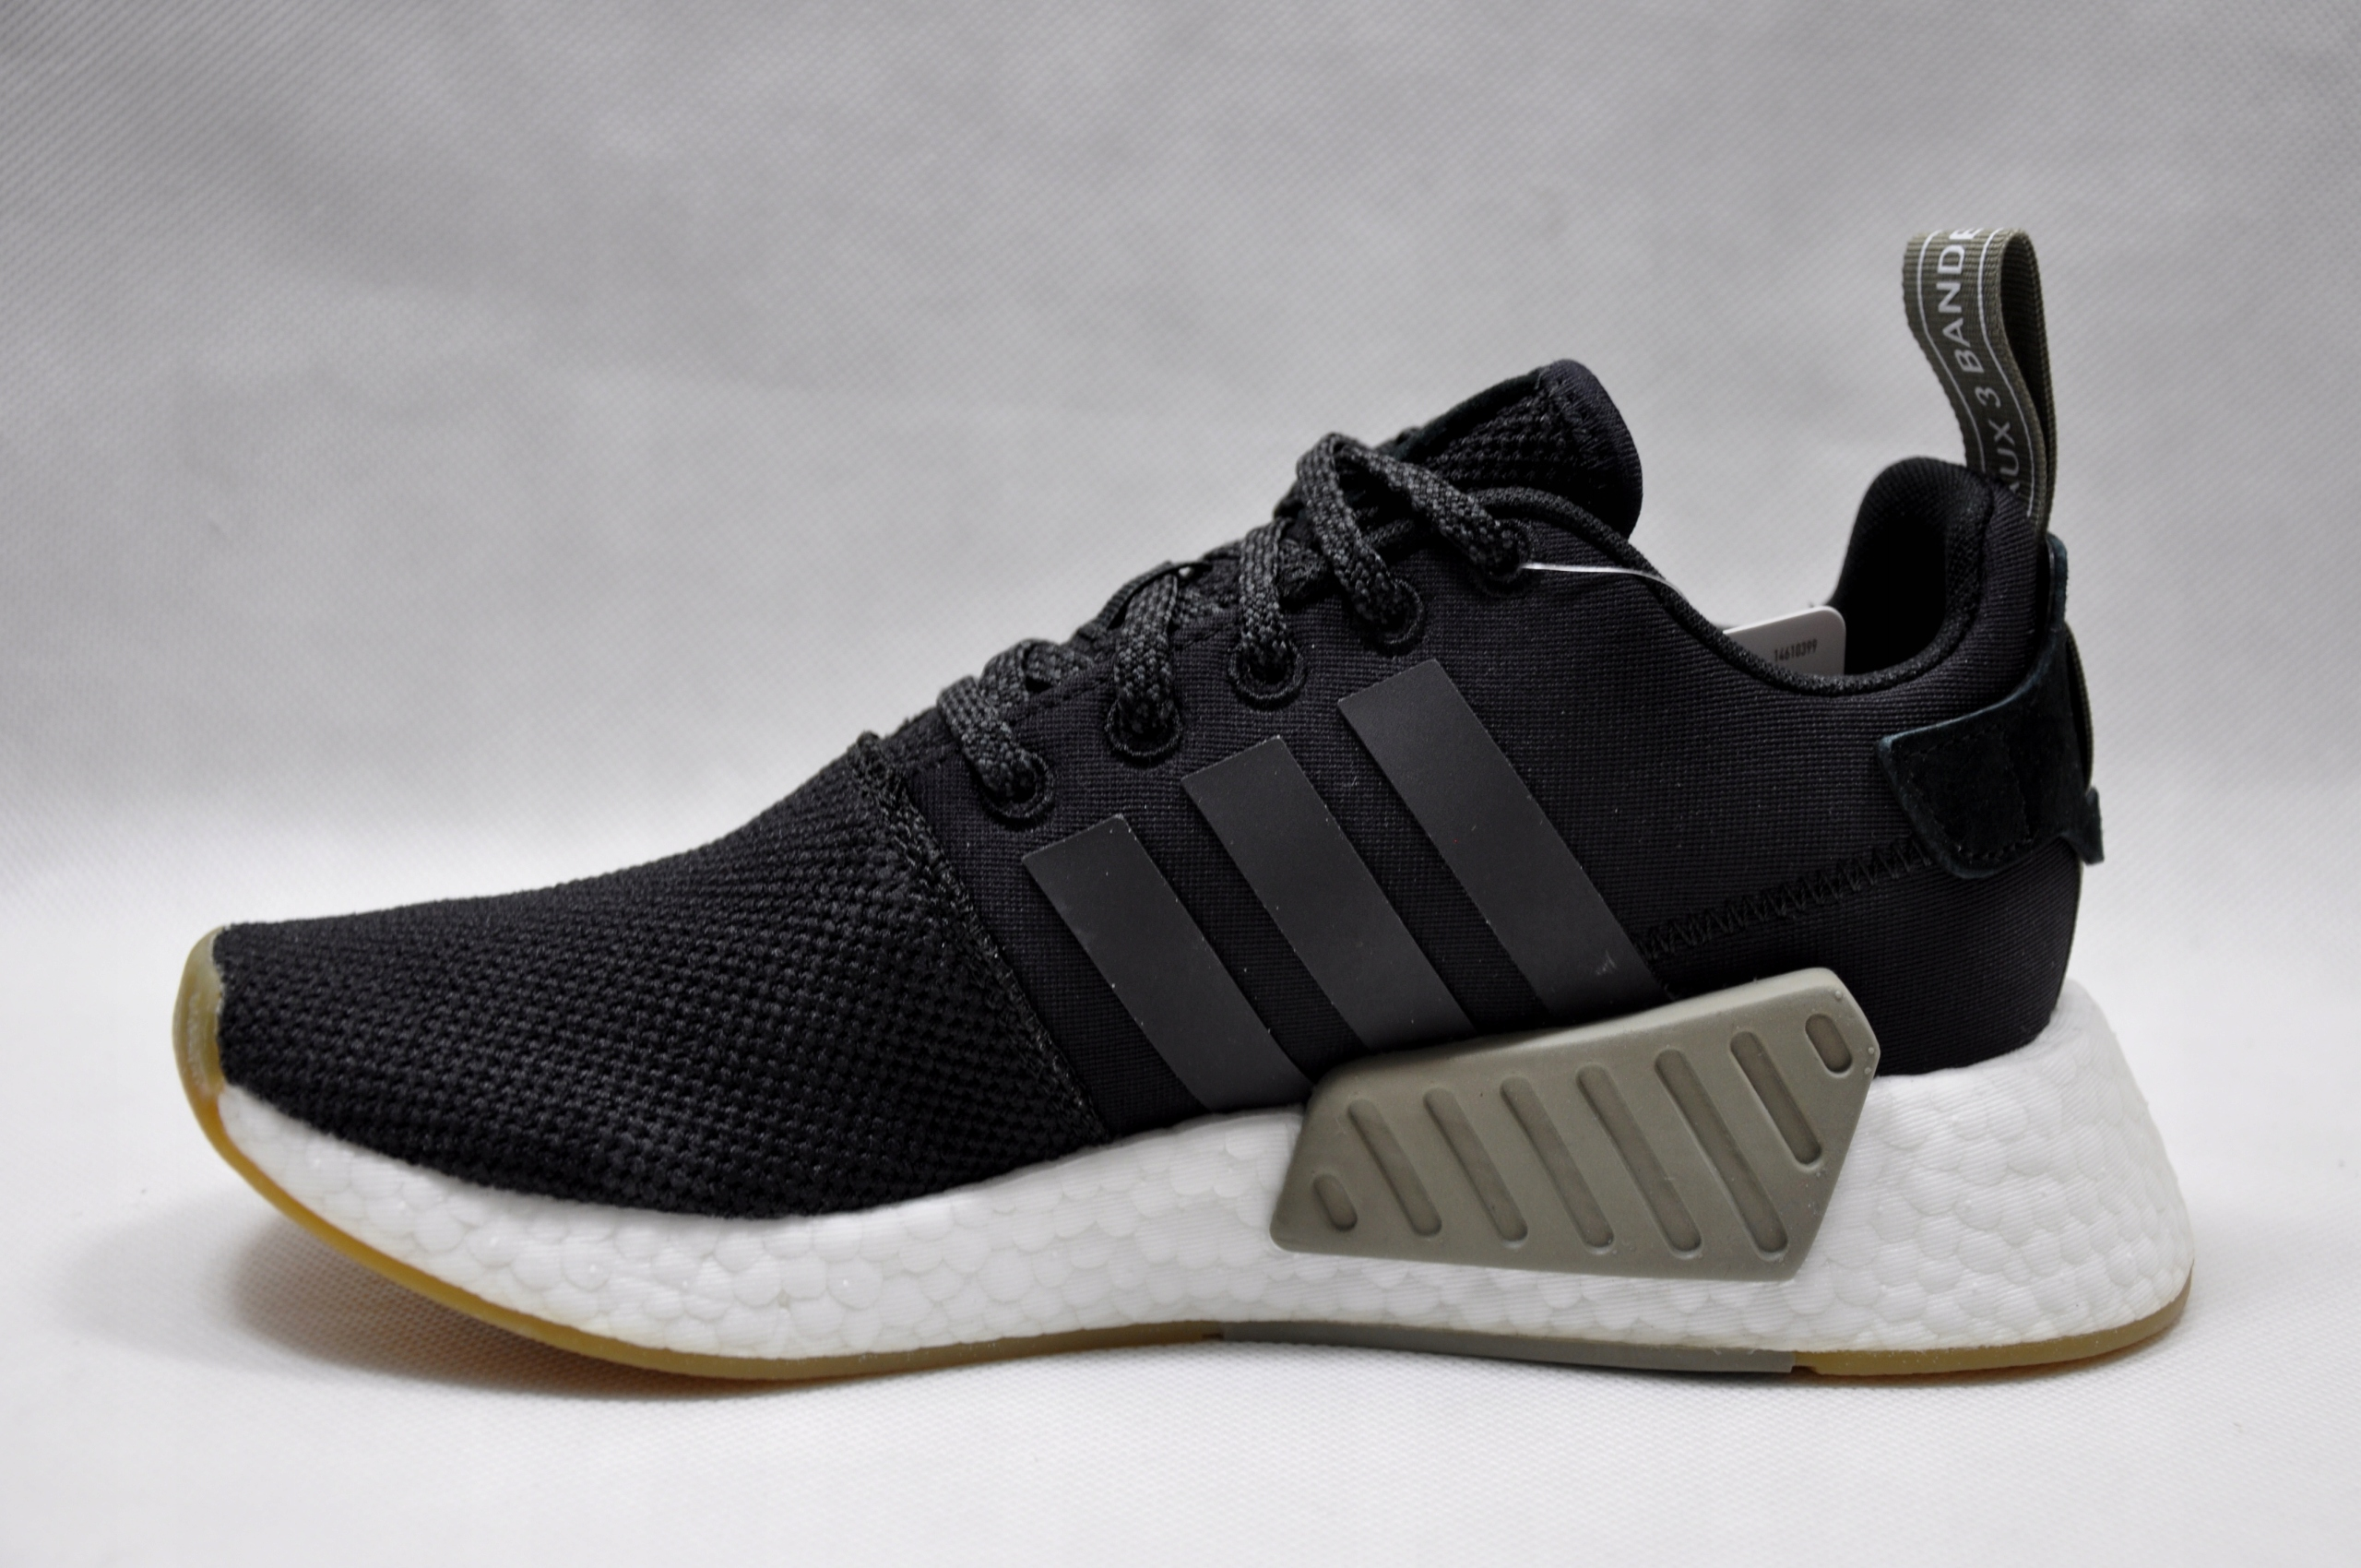 size 40 5bc7d 4f0df NOWE ADIDAS NMD R2 BY9917 ROZ. 38 2/3 - 7538141062 ...